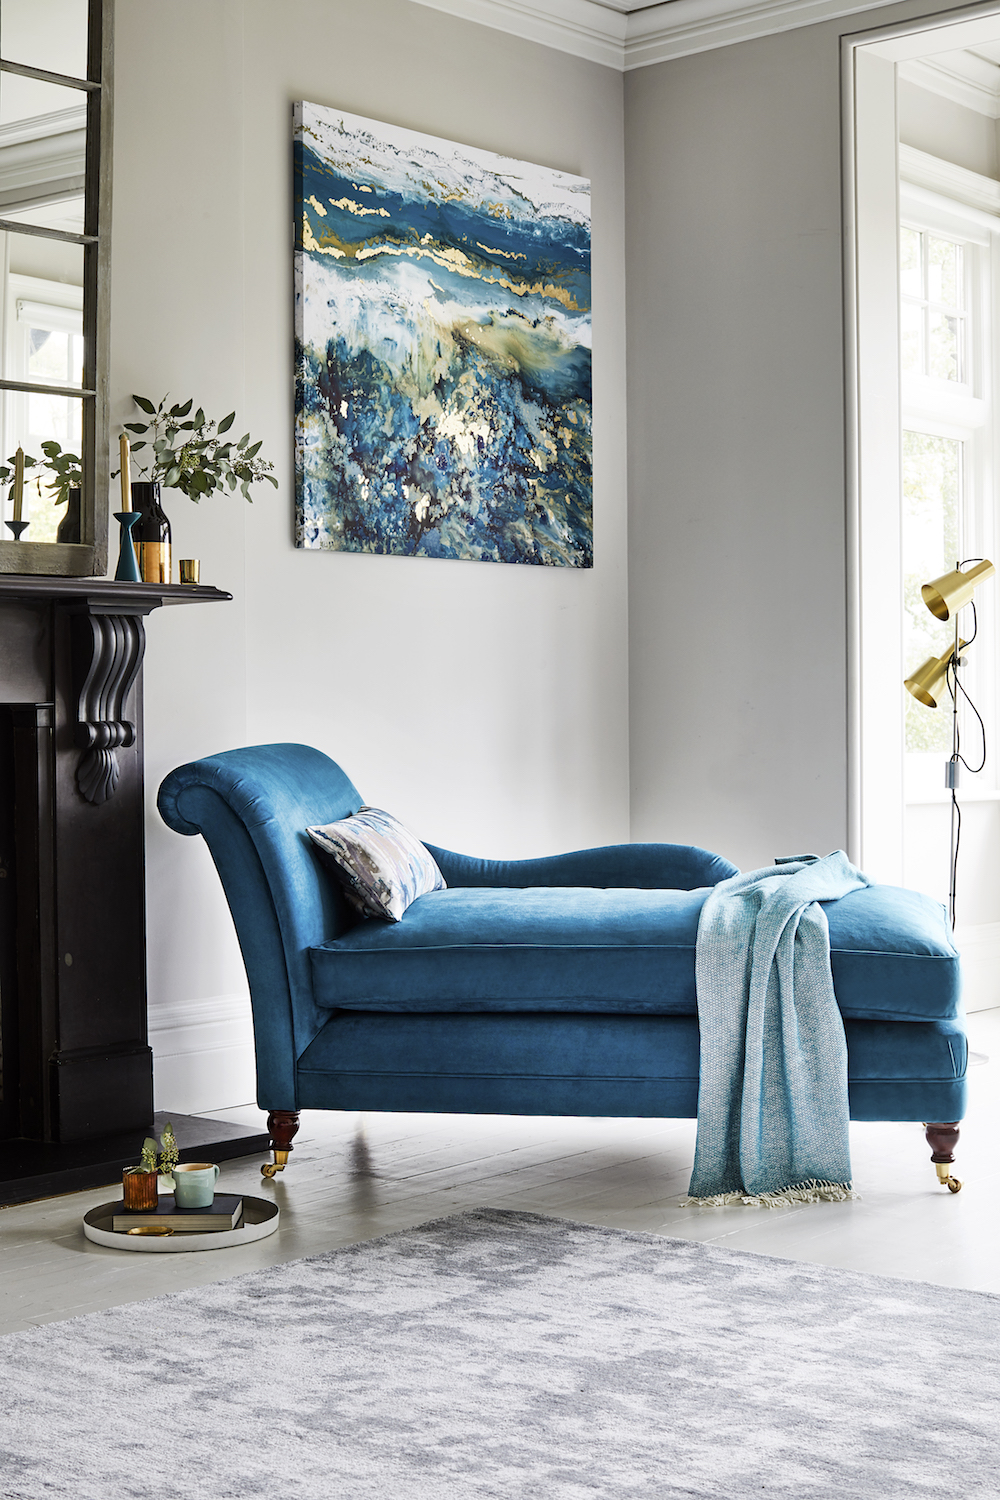 Willow & Hall The Hunstrete Chaise Longue in Matt Velvet Mallard from £897